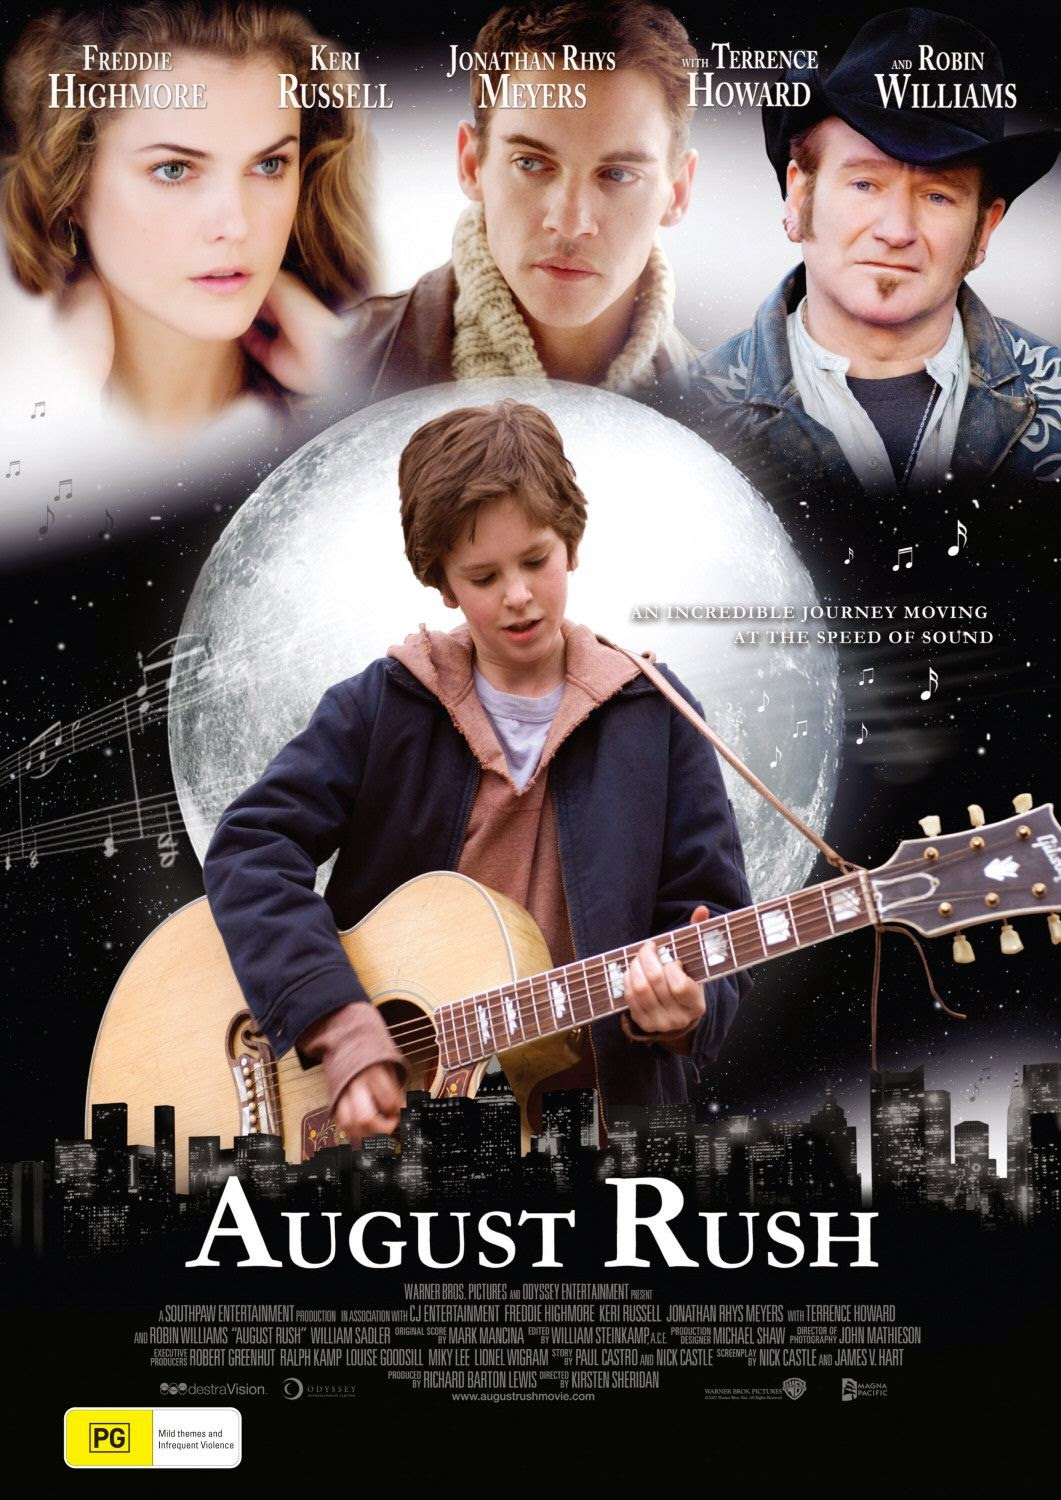 August Rush 2007 English Christian Movie Download